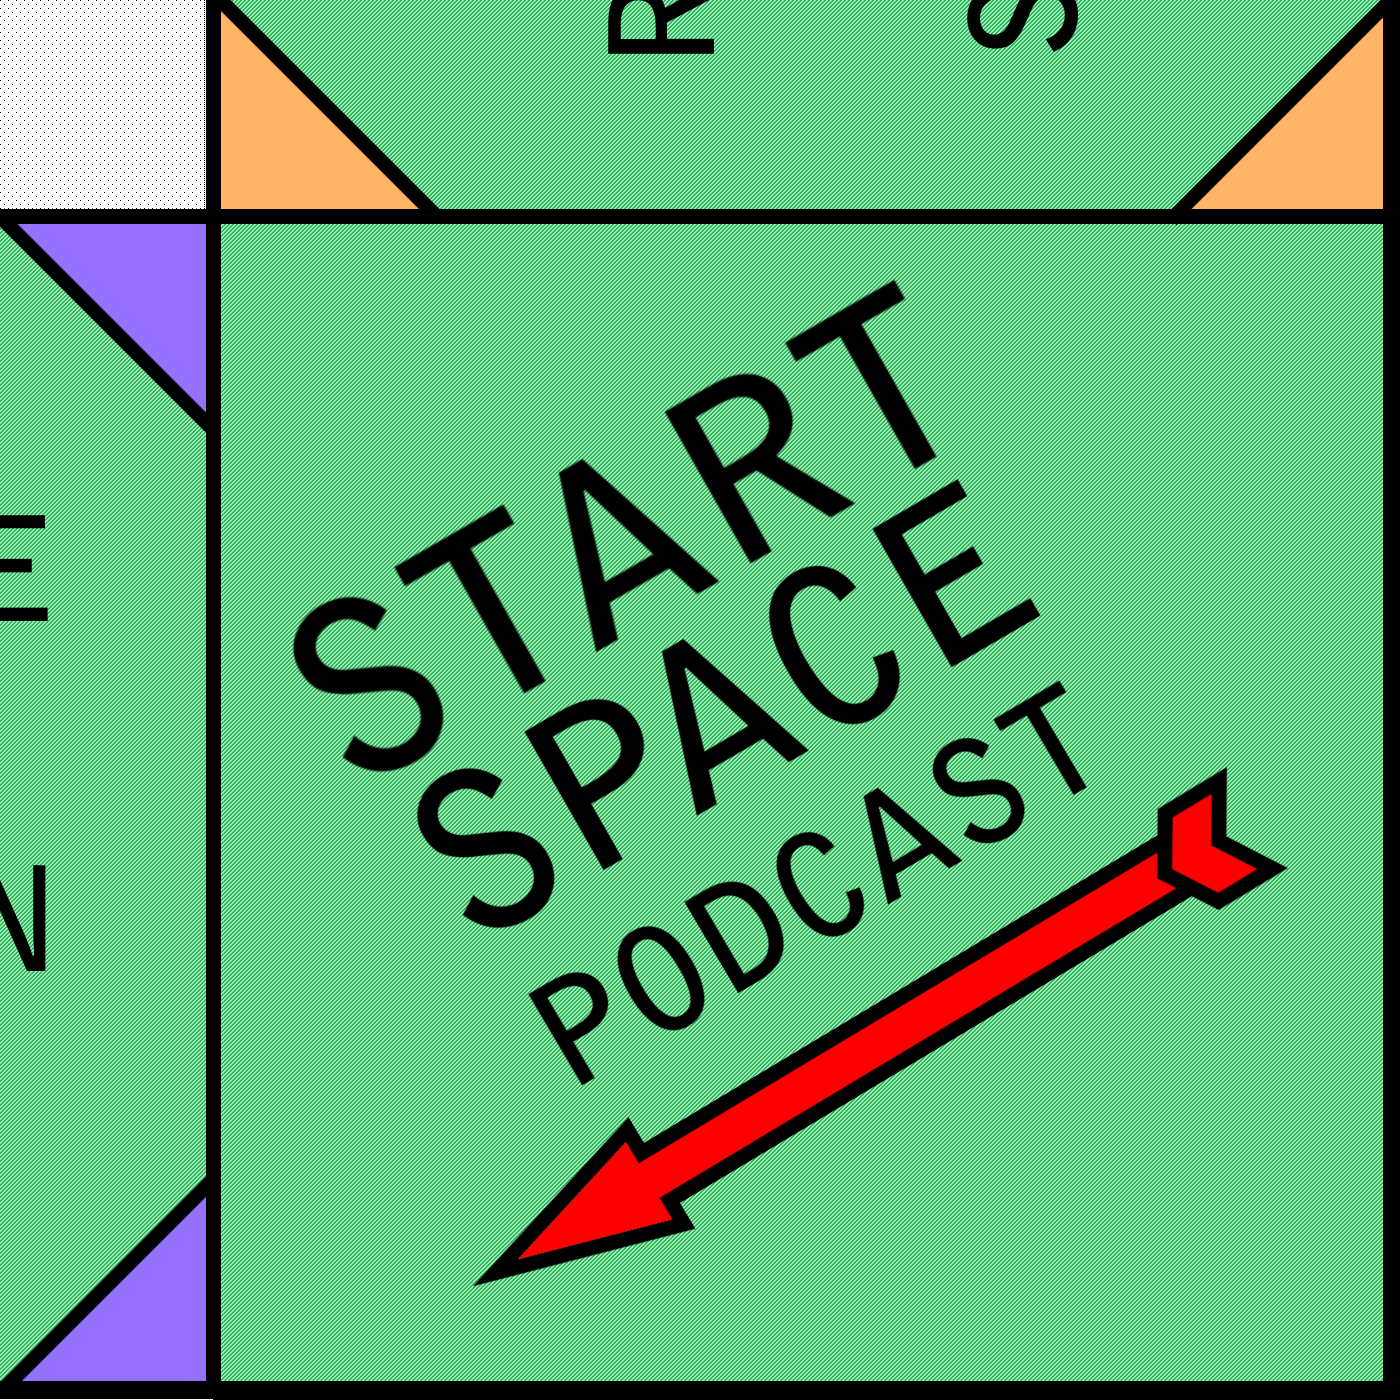 Episode 68 - Spacie Awards 2016 and Claustrophobia show art